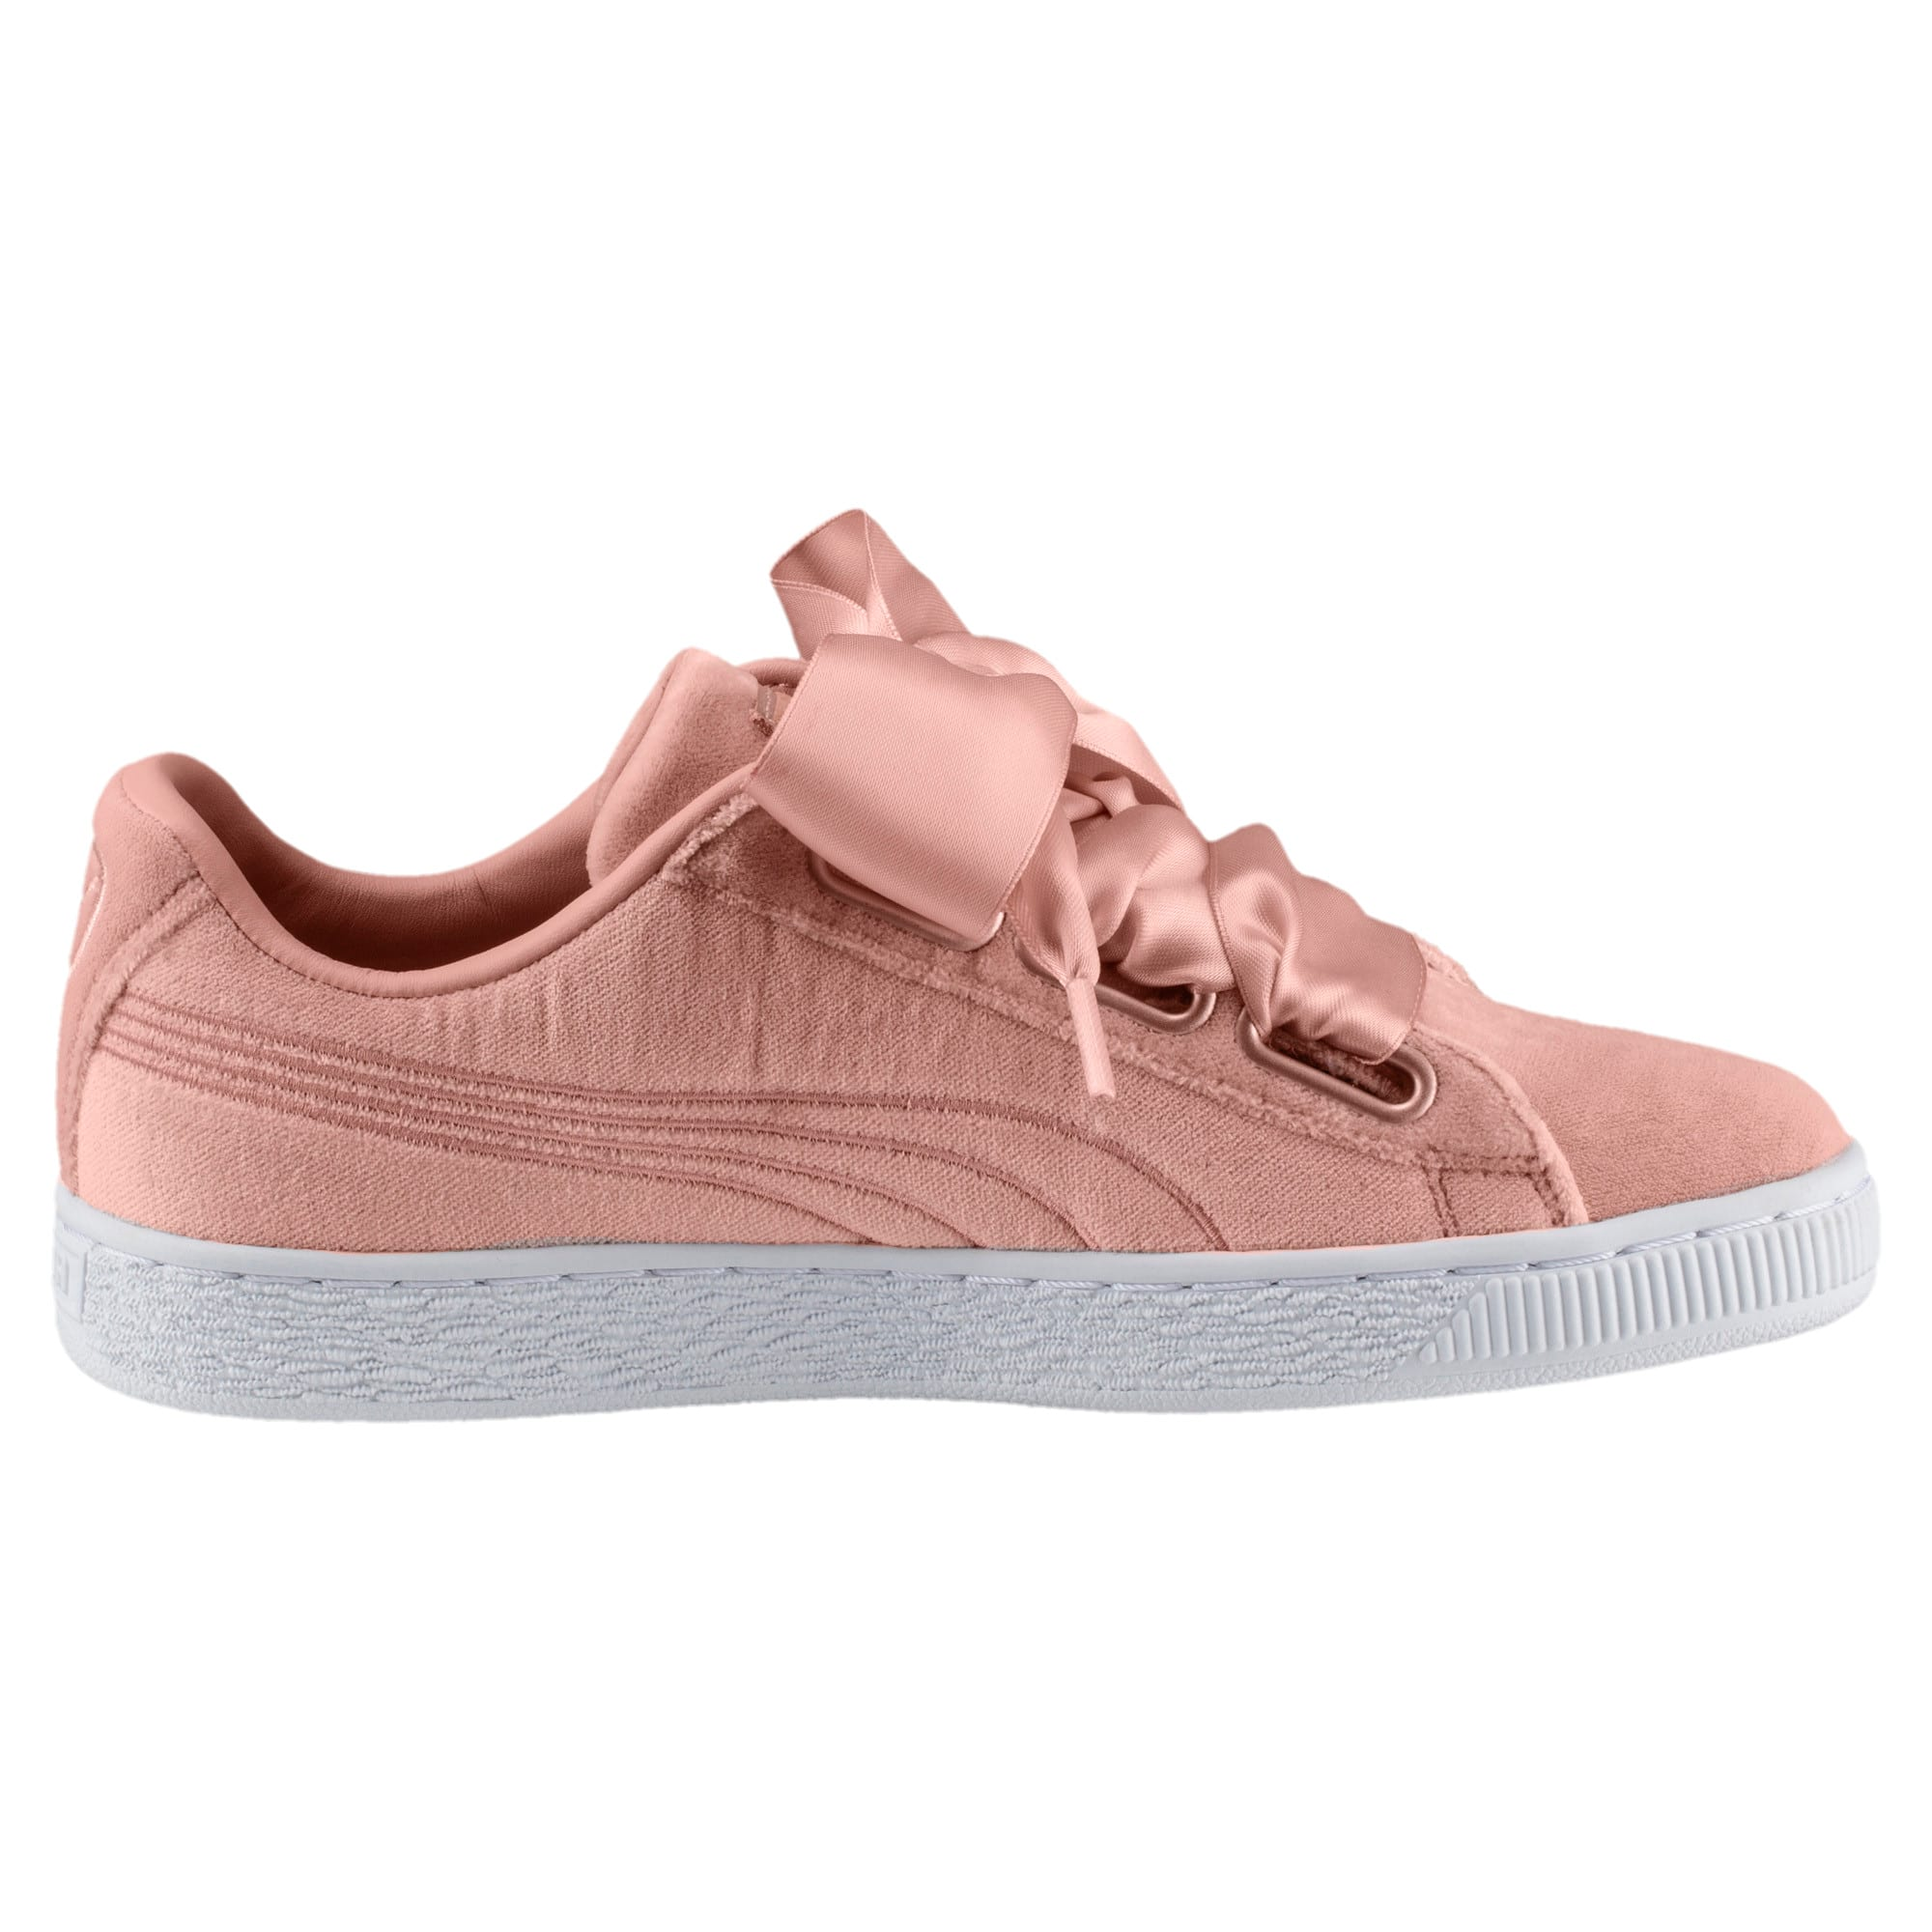 Thumbnail 3 of Basket Heart Hyper Embroidery Women's Trainers, Peach Beige, medium-IND